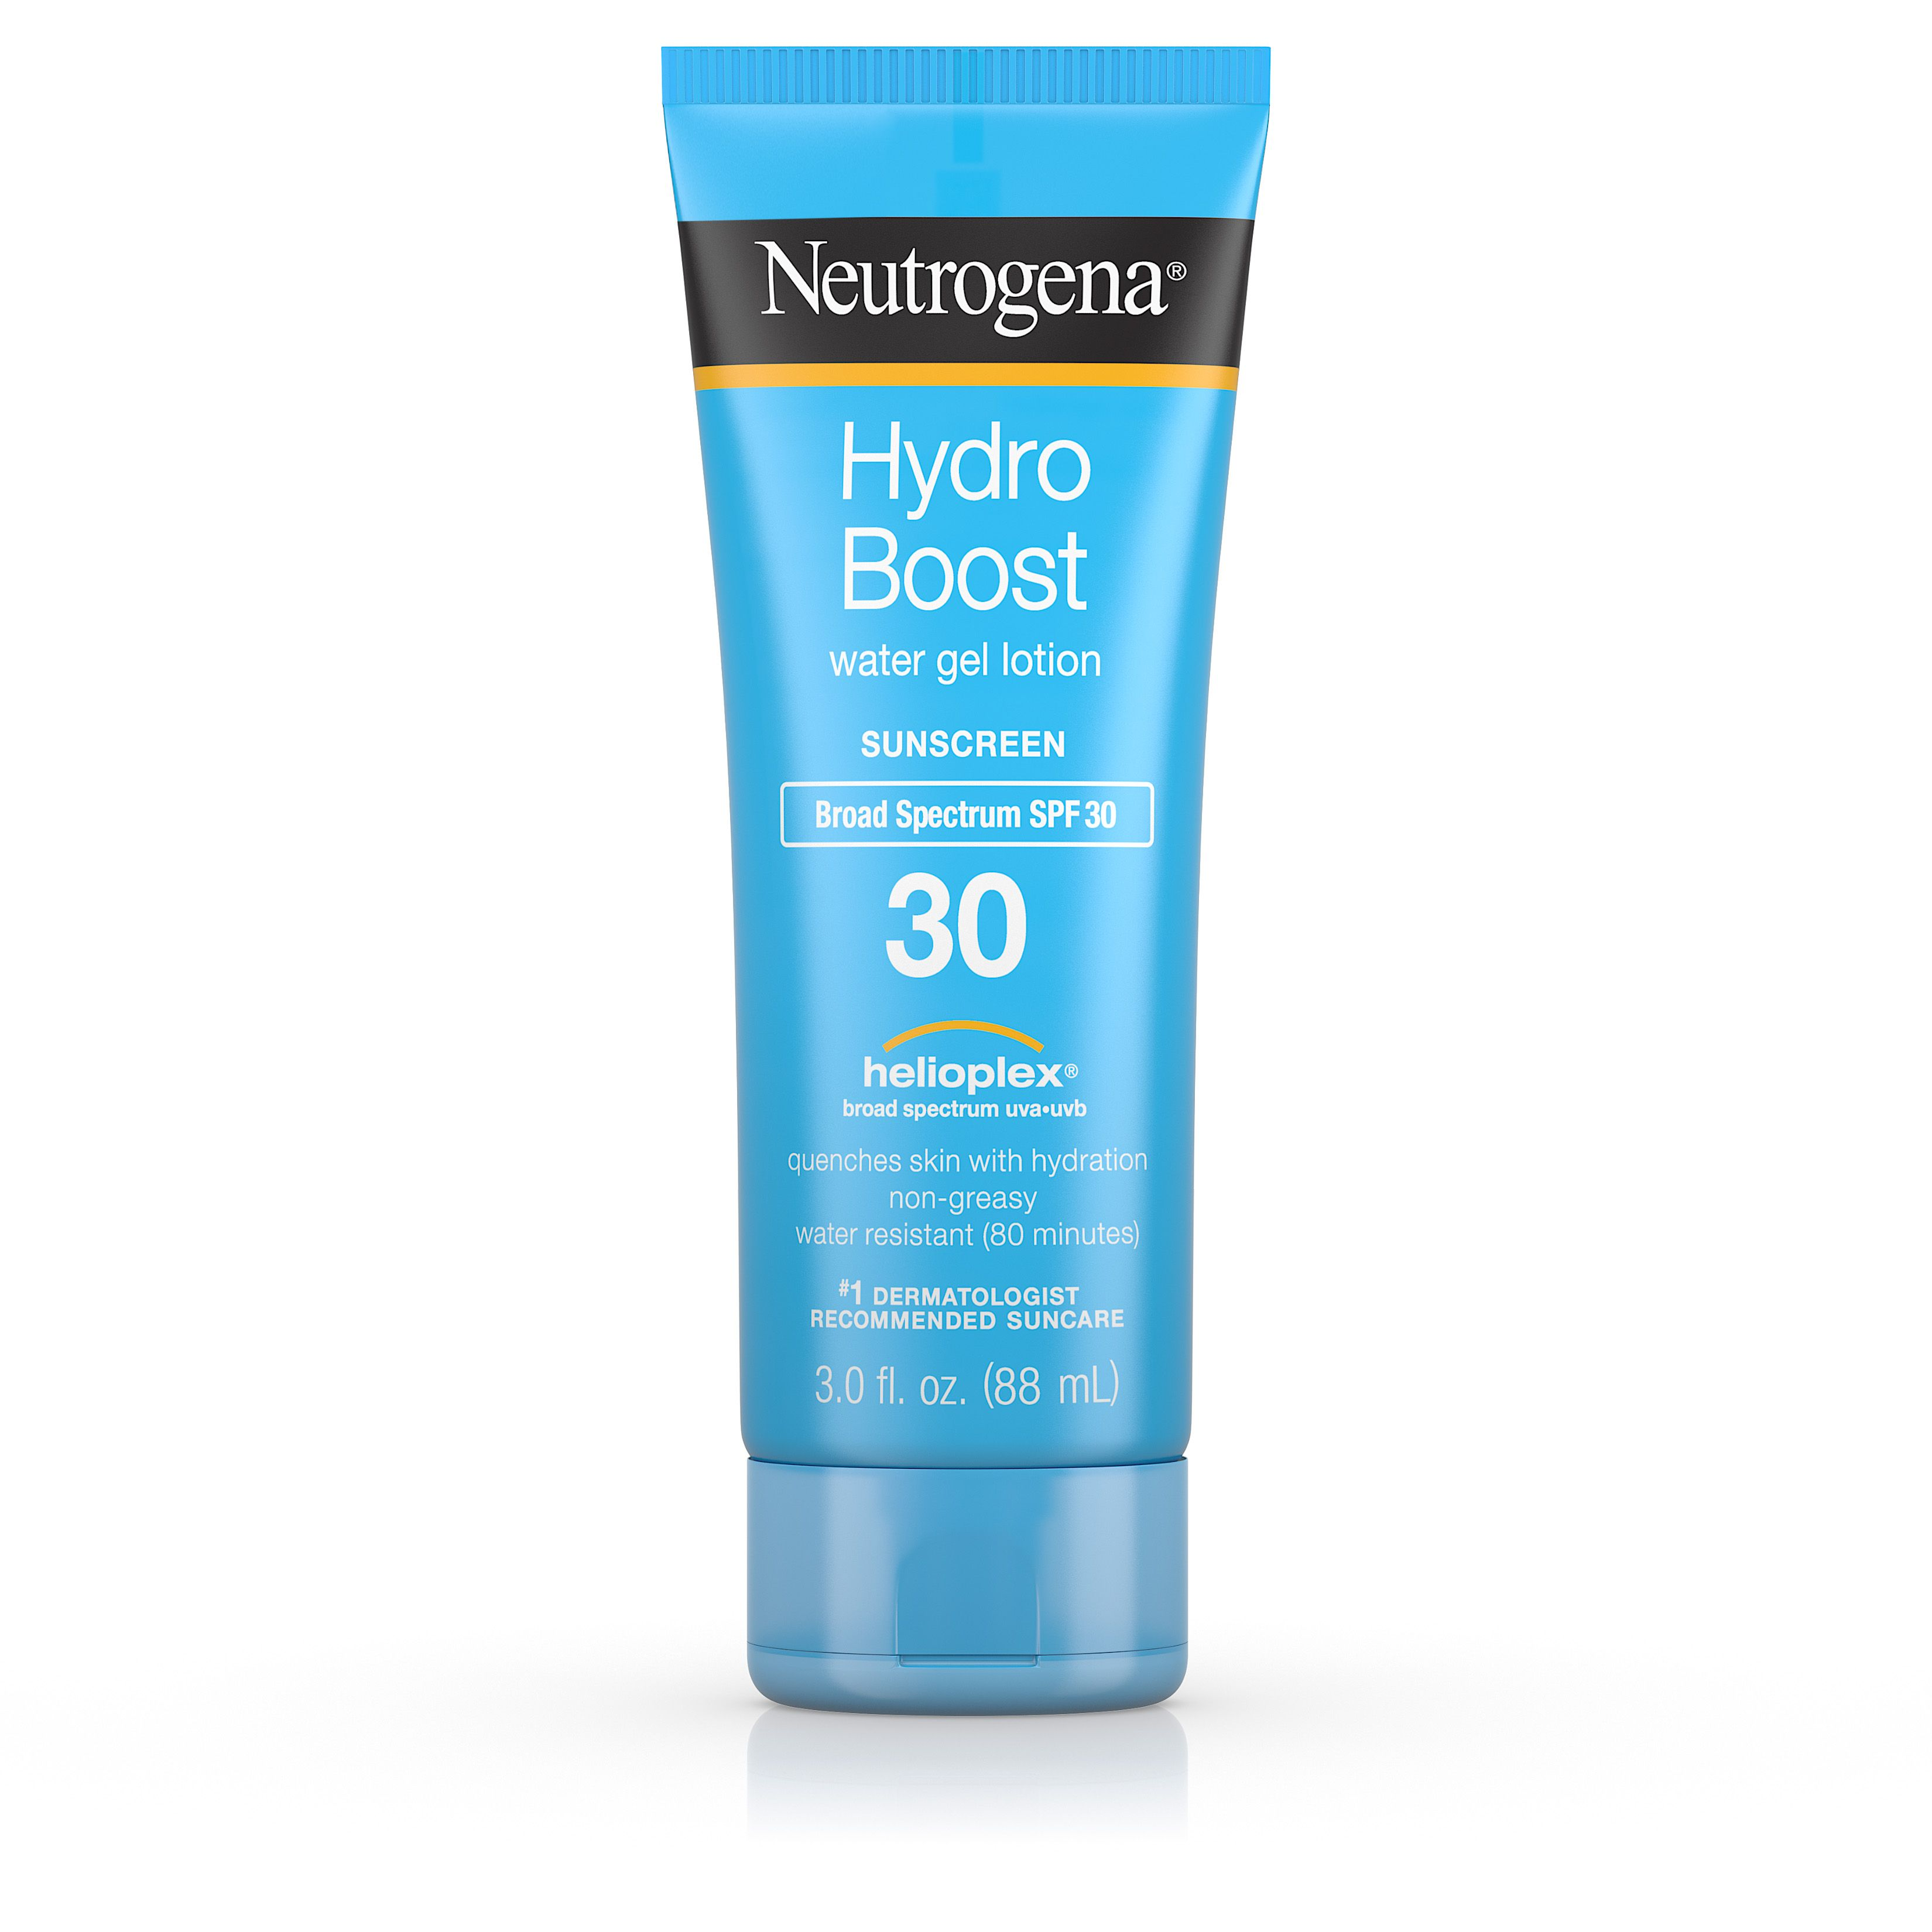 Hydro Boost Water Gel Lotion Spf 30 In 2020 Gel Sunscreen Sunscreen Moisturizer Sunscreen Lotion